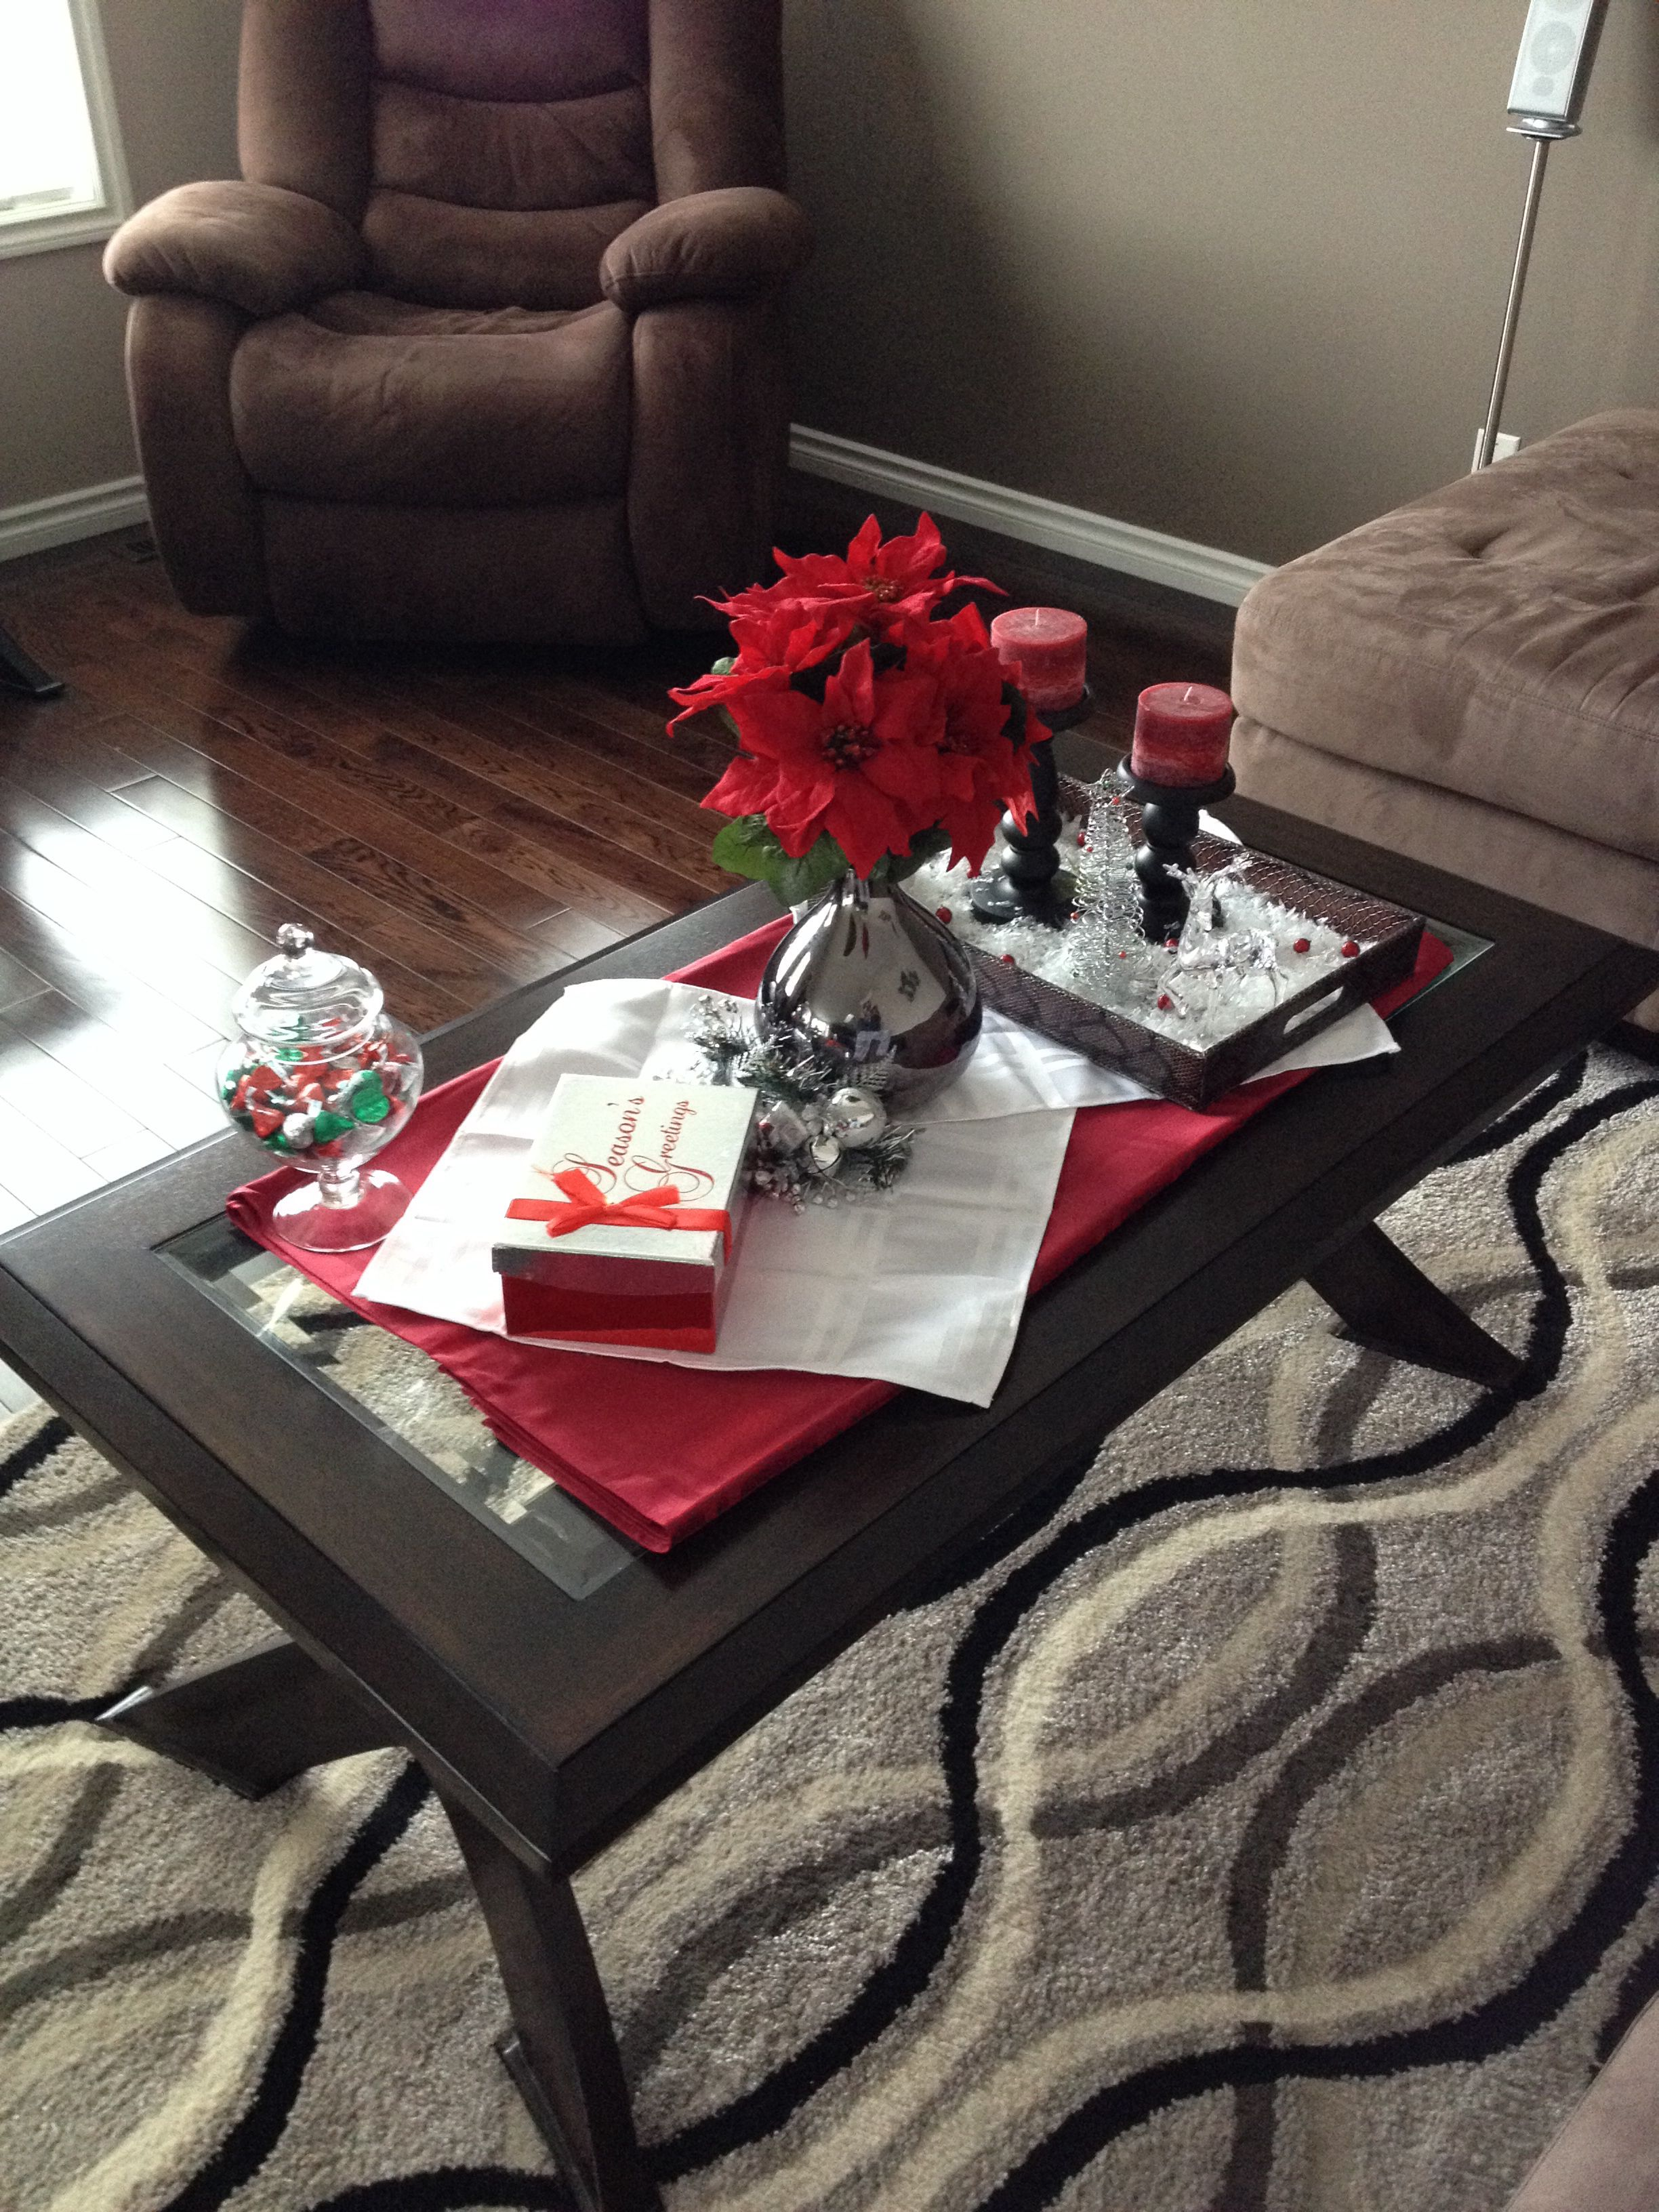 Christmas decor for a coffee table | Decorating coffee ...